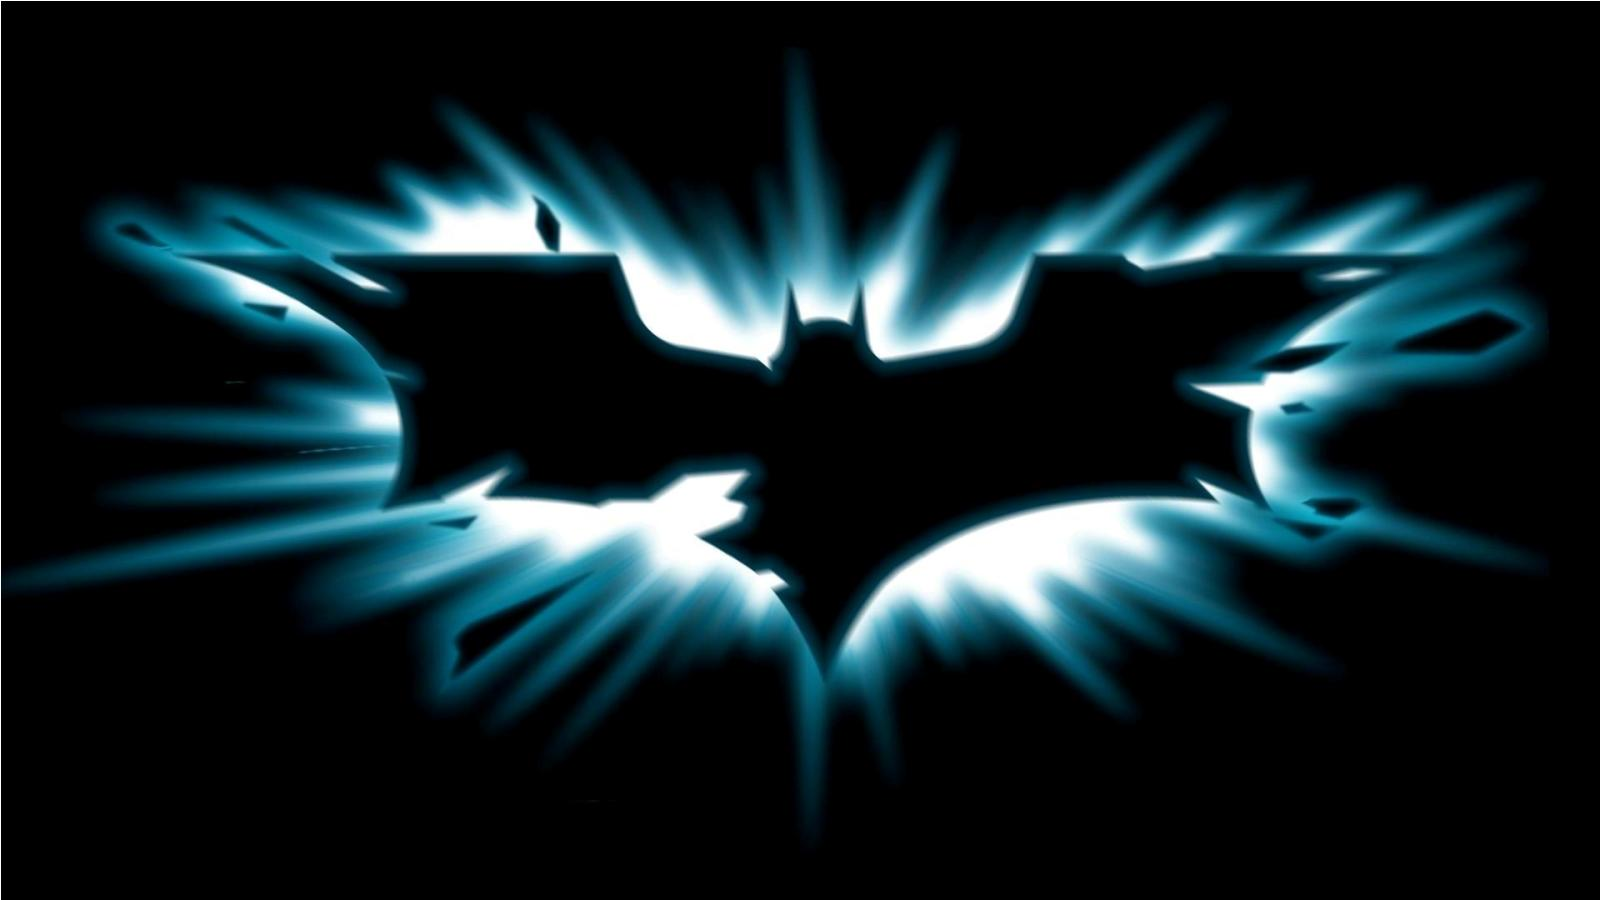 Cool Batman Logo Wallpaper Superhero Logo Batman Wallpaper HDjpg 1600x900